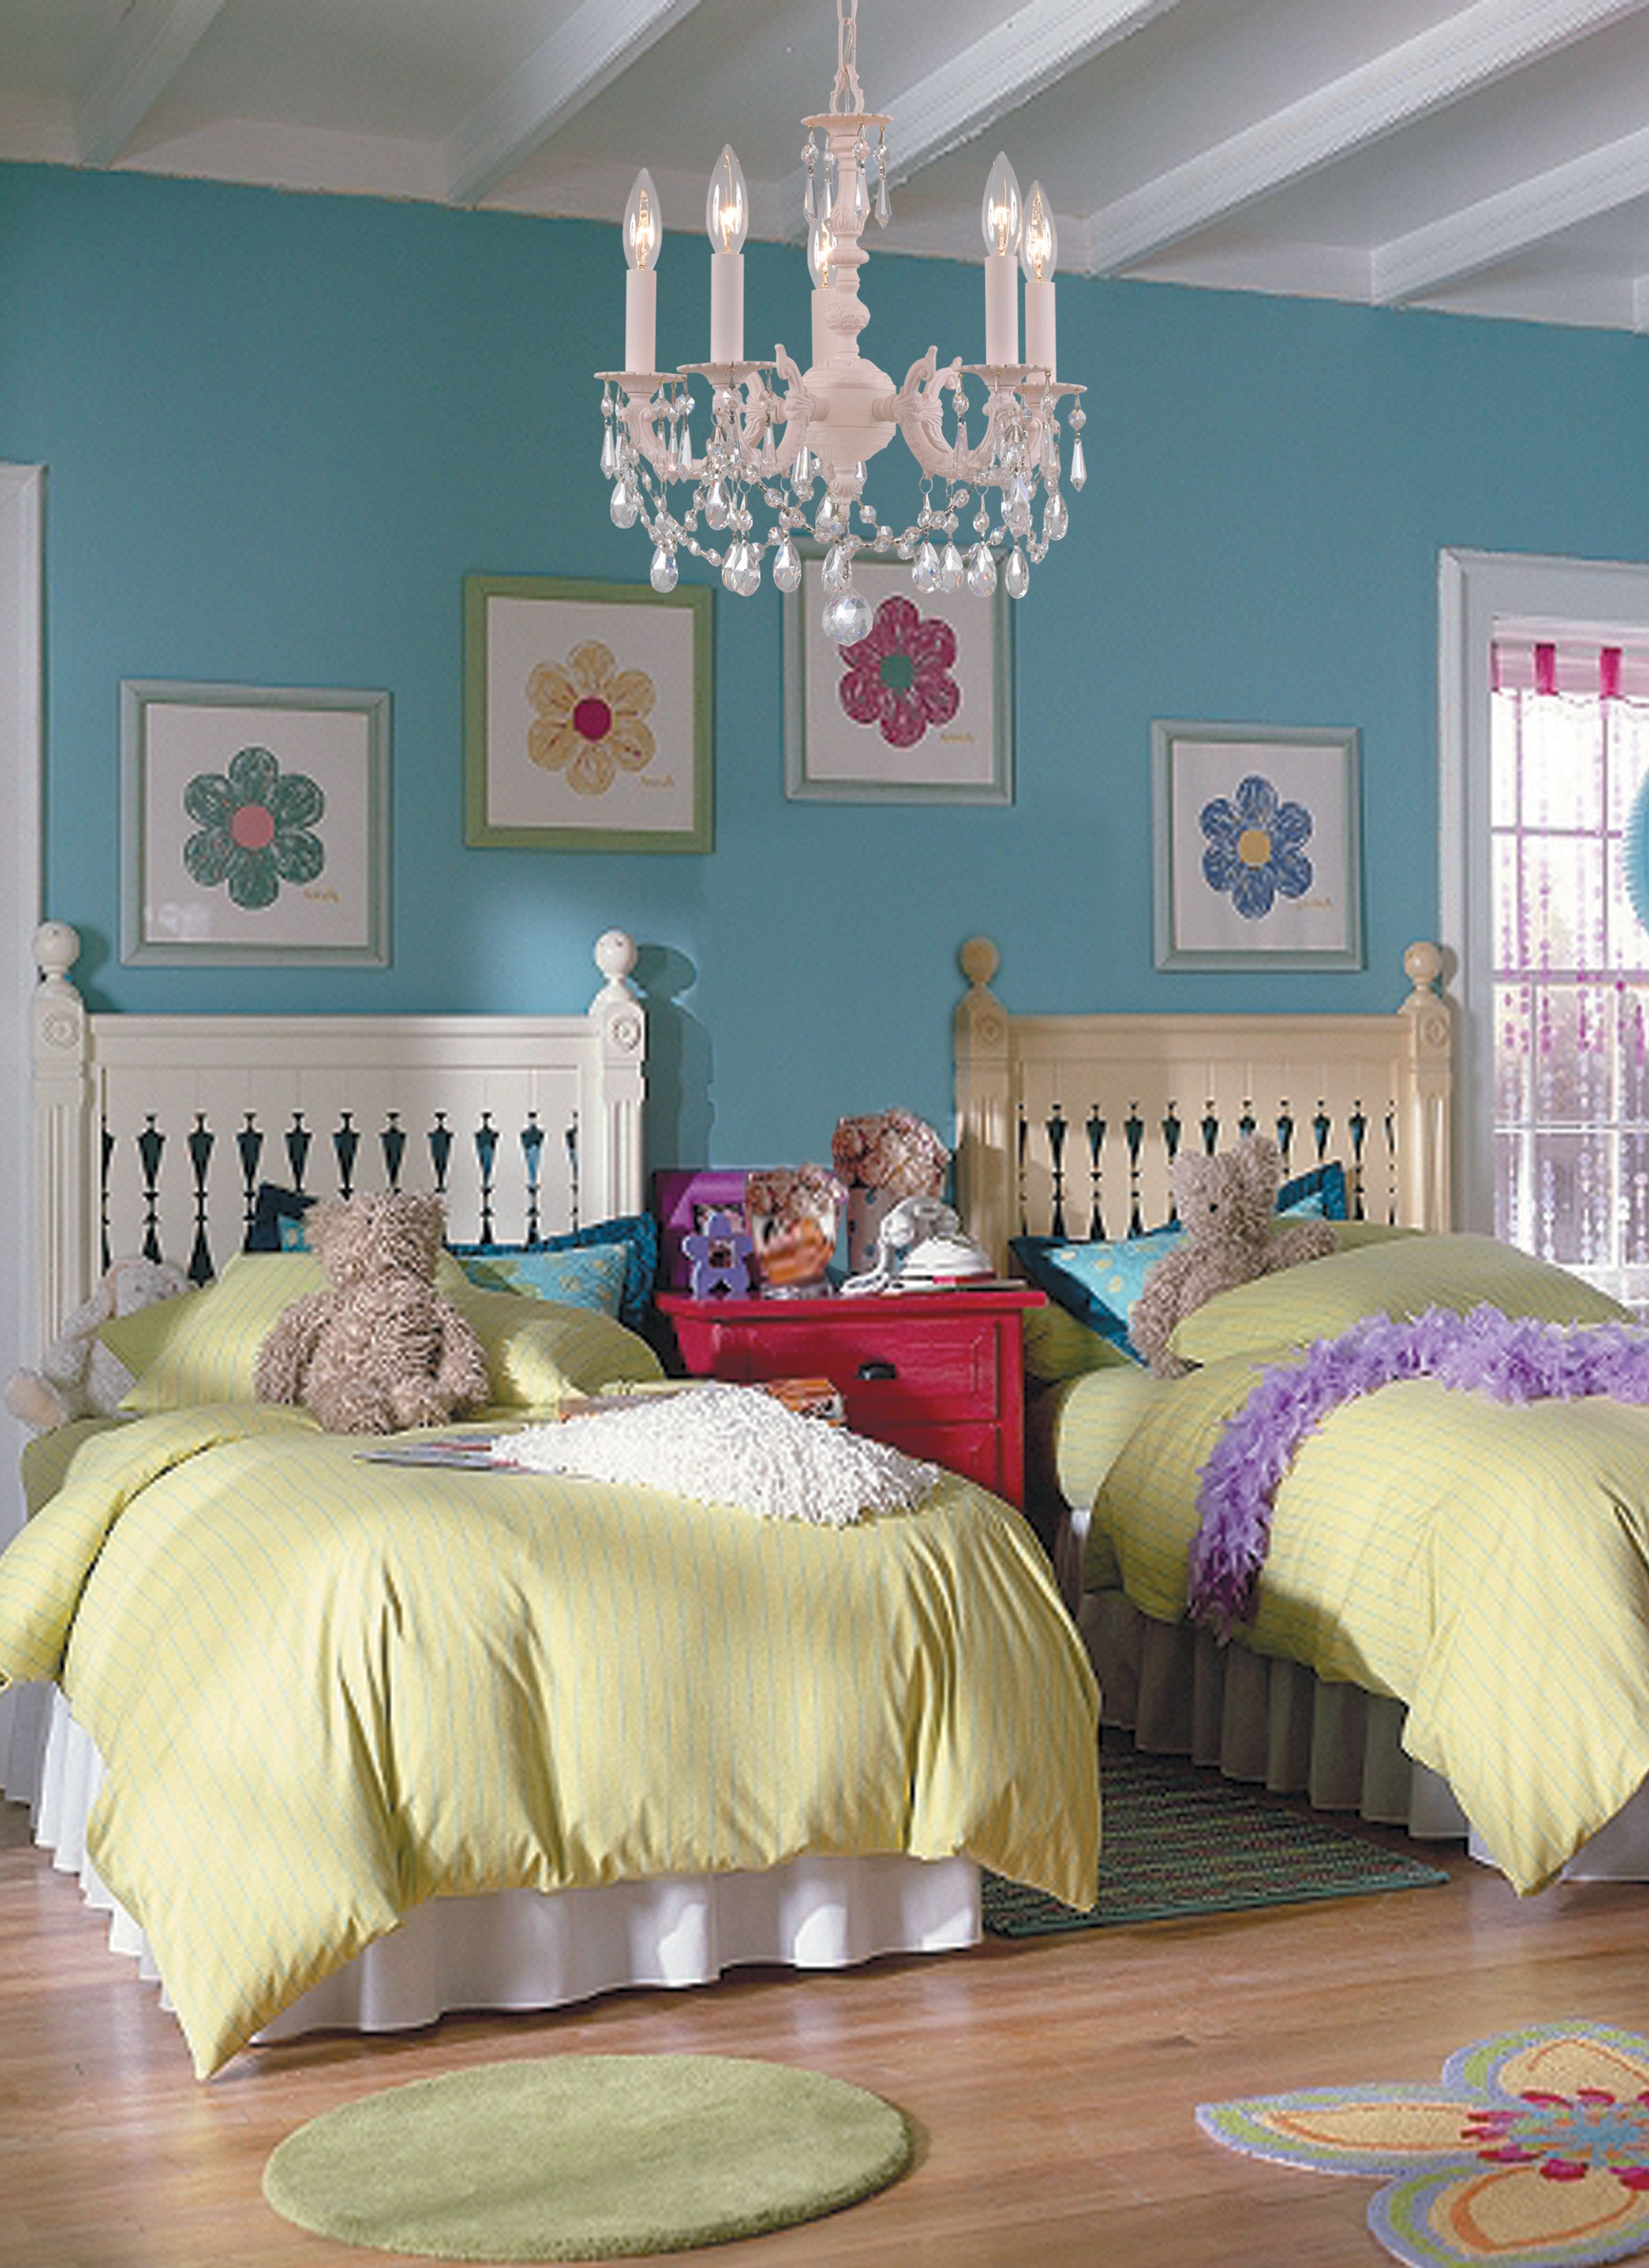 a dream room for a little princess with modern bright